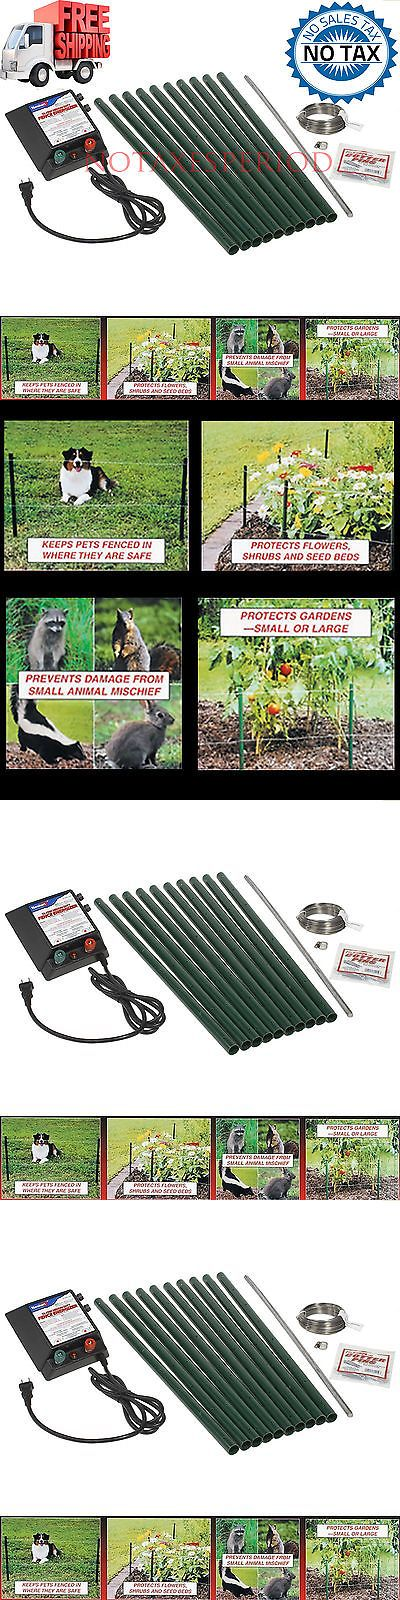 Electronic Fences 116388: No Tax! Electric Fence Kit Above Ground For Pet Dog And Animals Training 5 Acres -> BUY IT NOW ONLY: $75.72 on eBay!